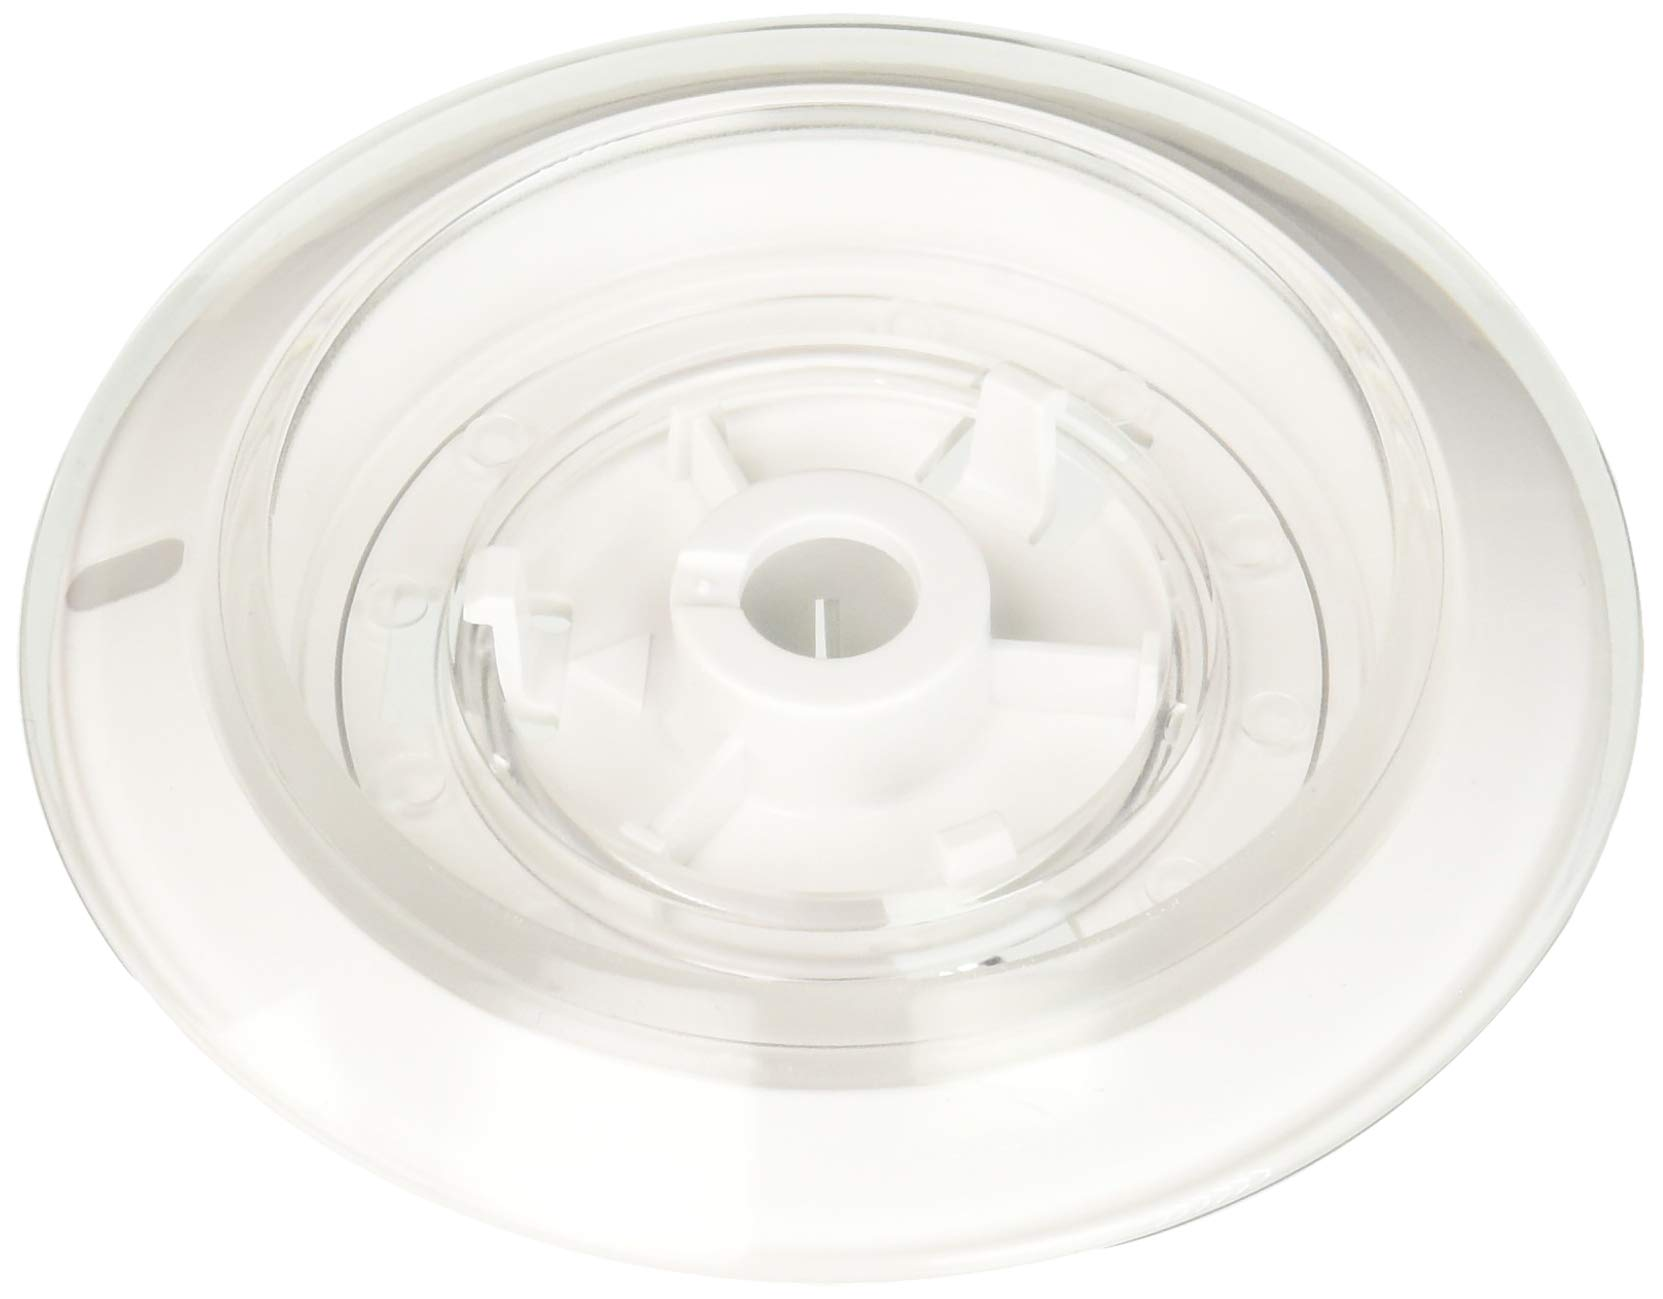 Whirlpool WP3949428 Dial by Whirlpool